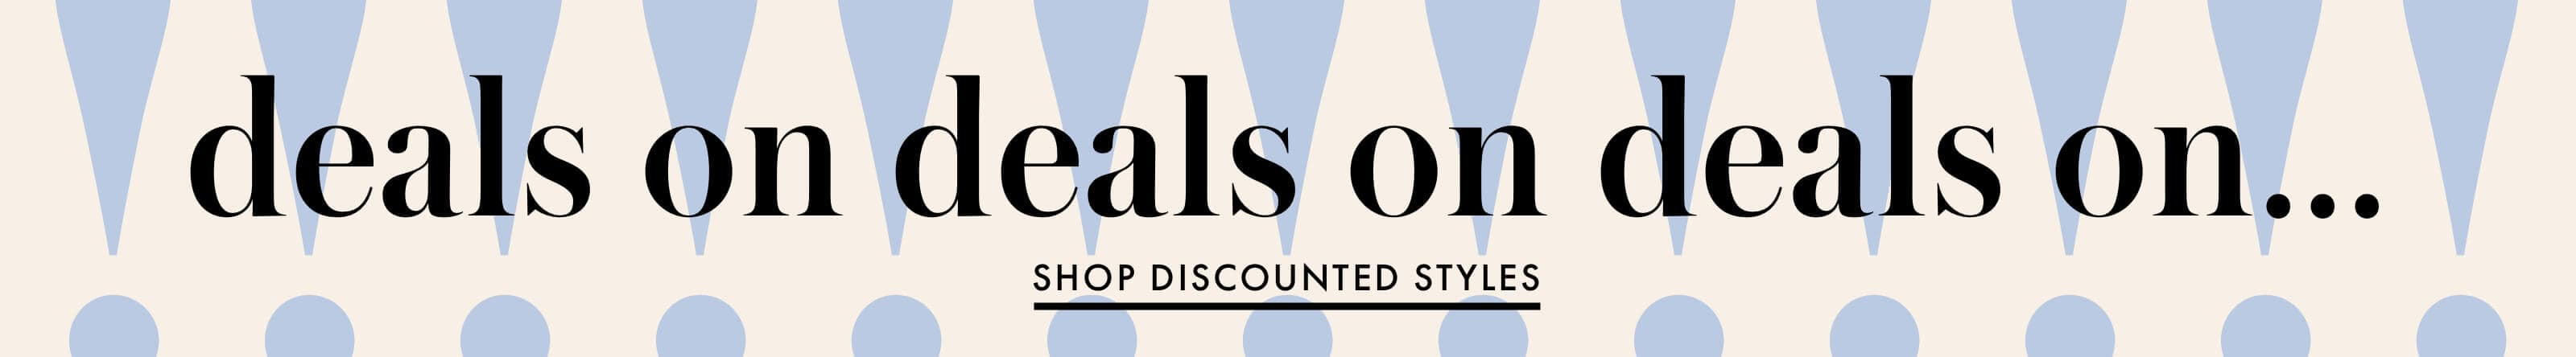 deals on deals on deals. shop discounted styles.